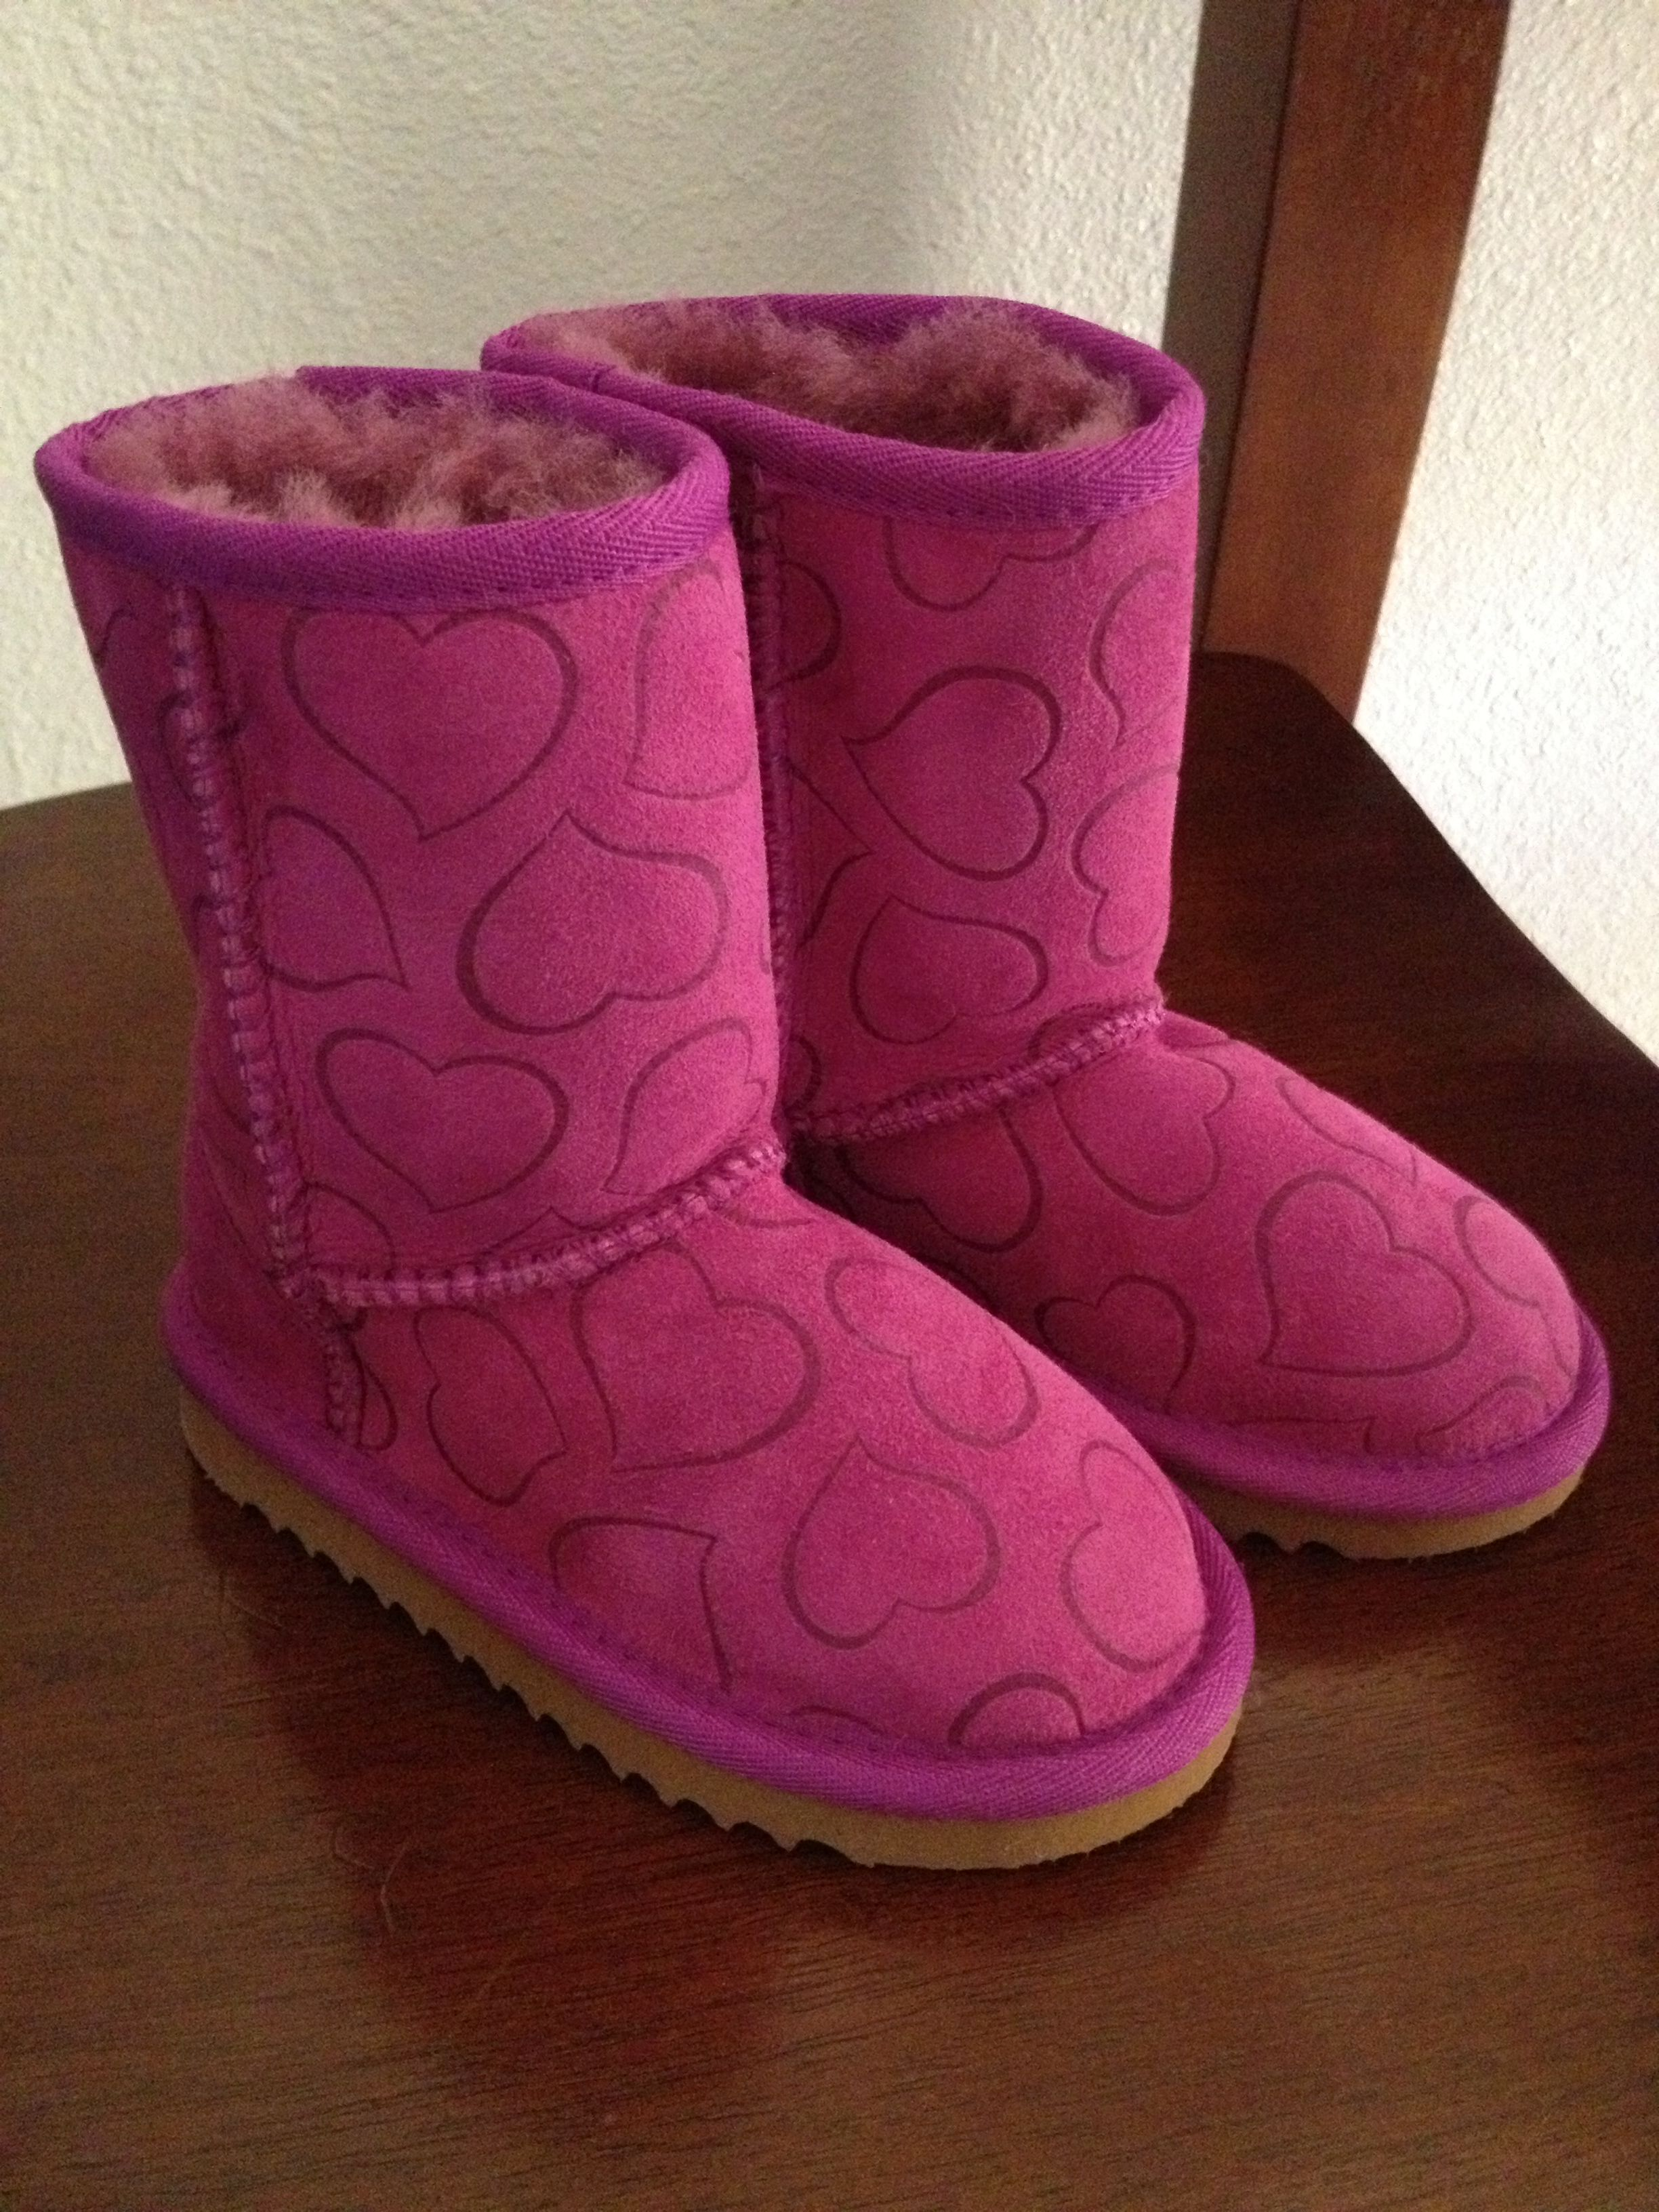 Boots, Shearling boots, Ugg boots